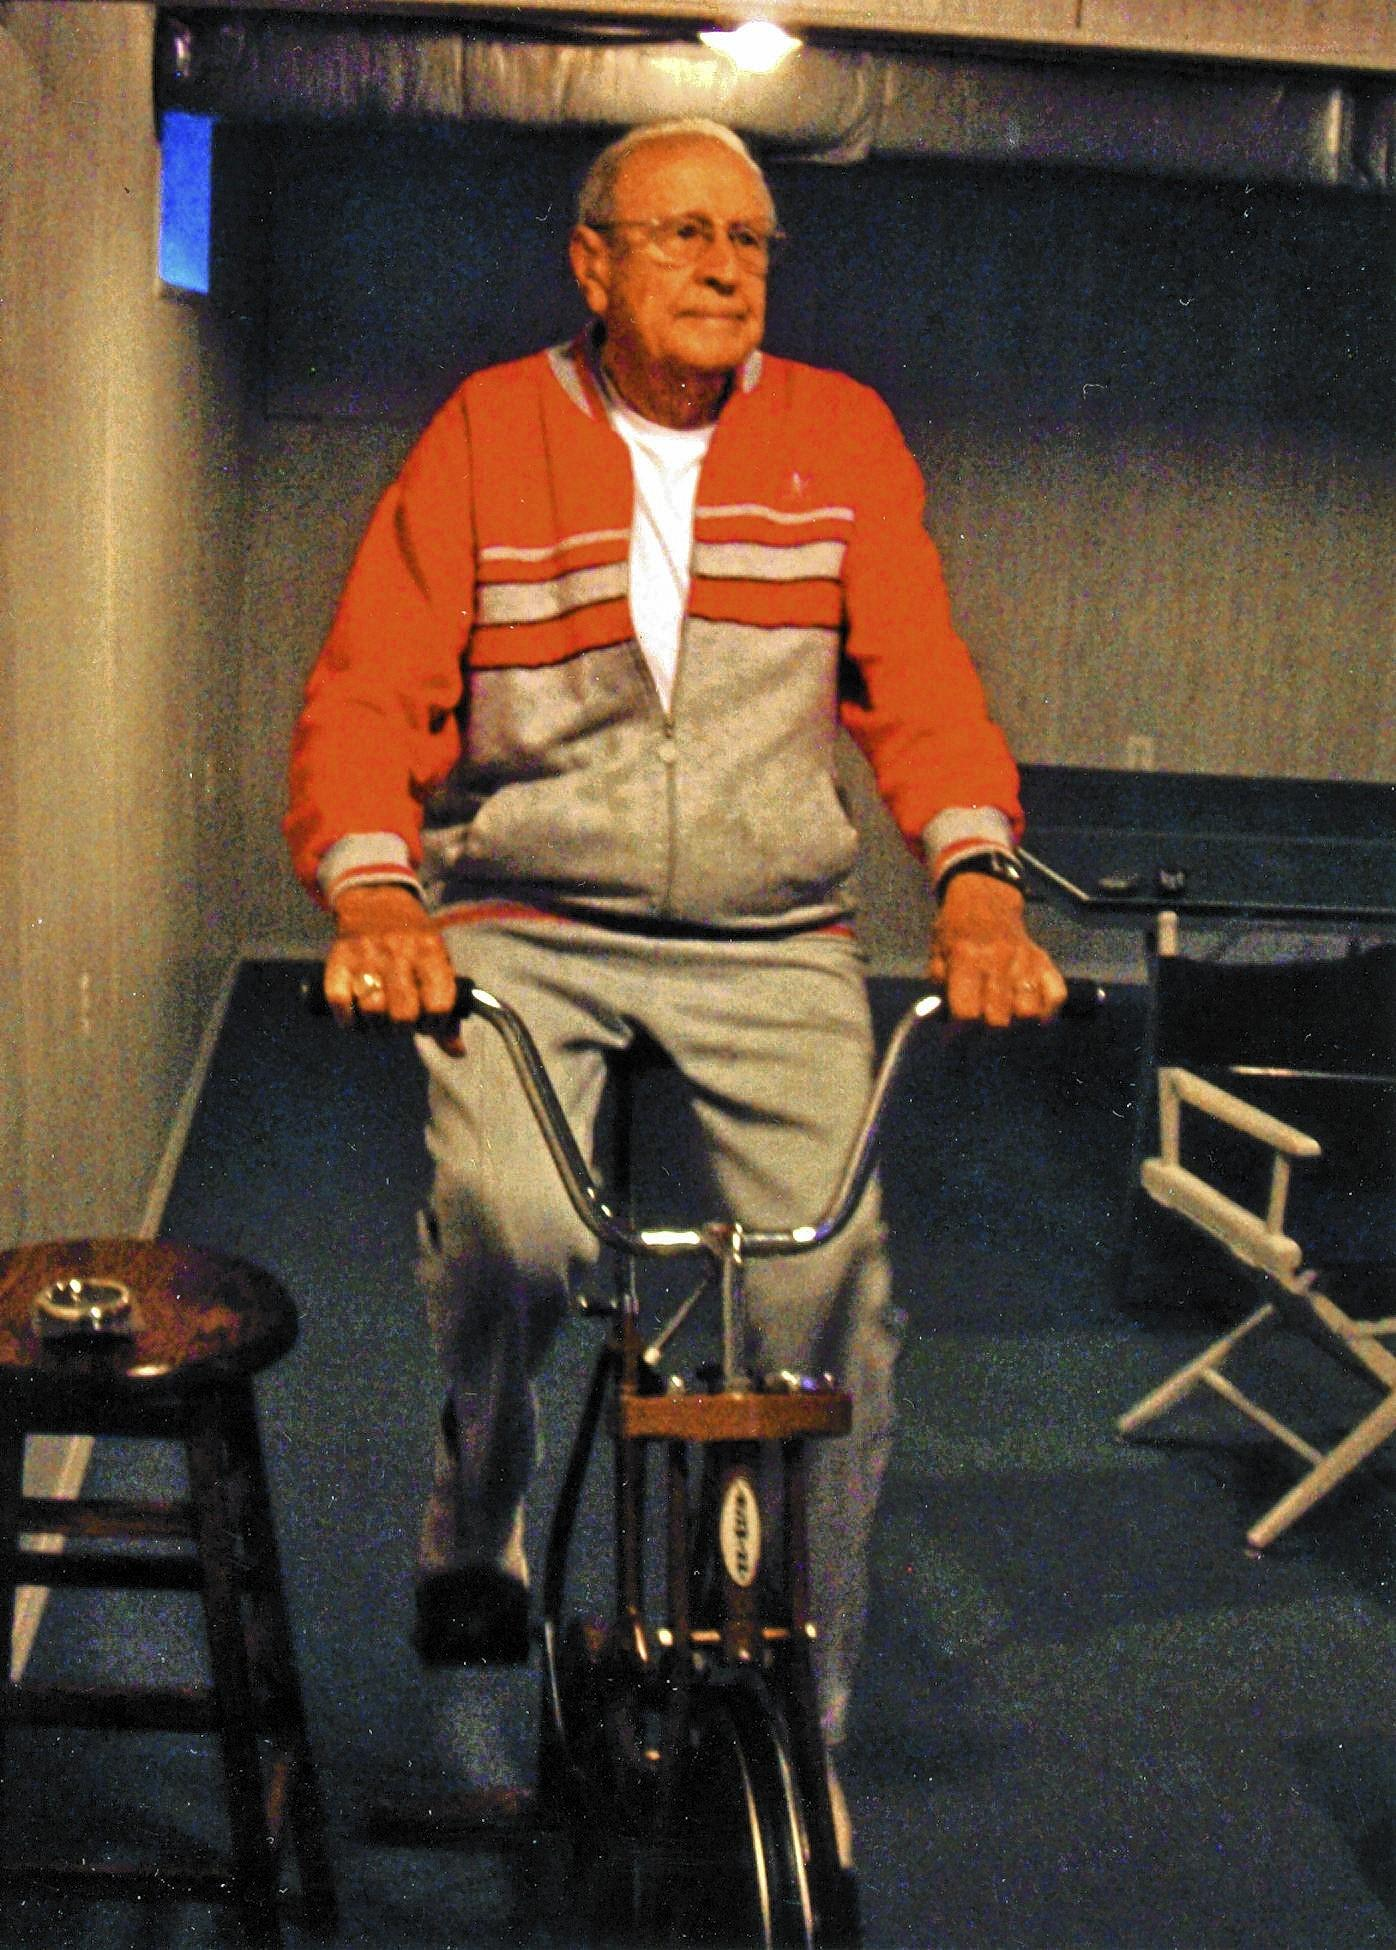 Frank Lawatsch, 92, exercises to control weight and to stay healthy.